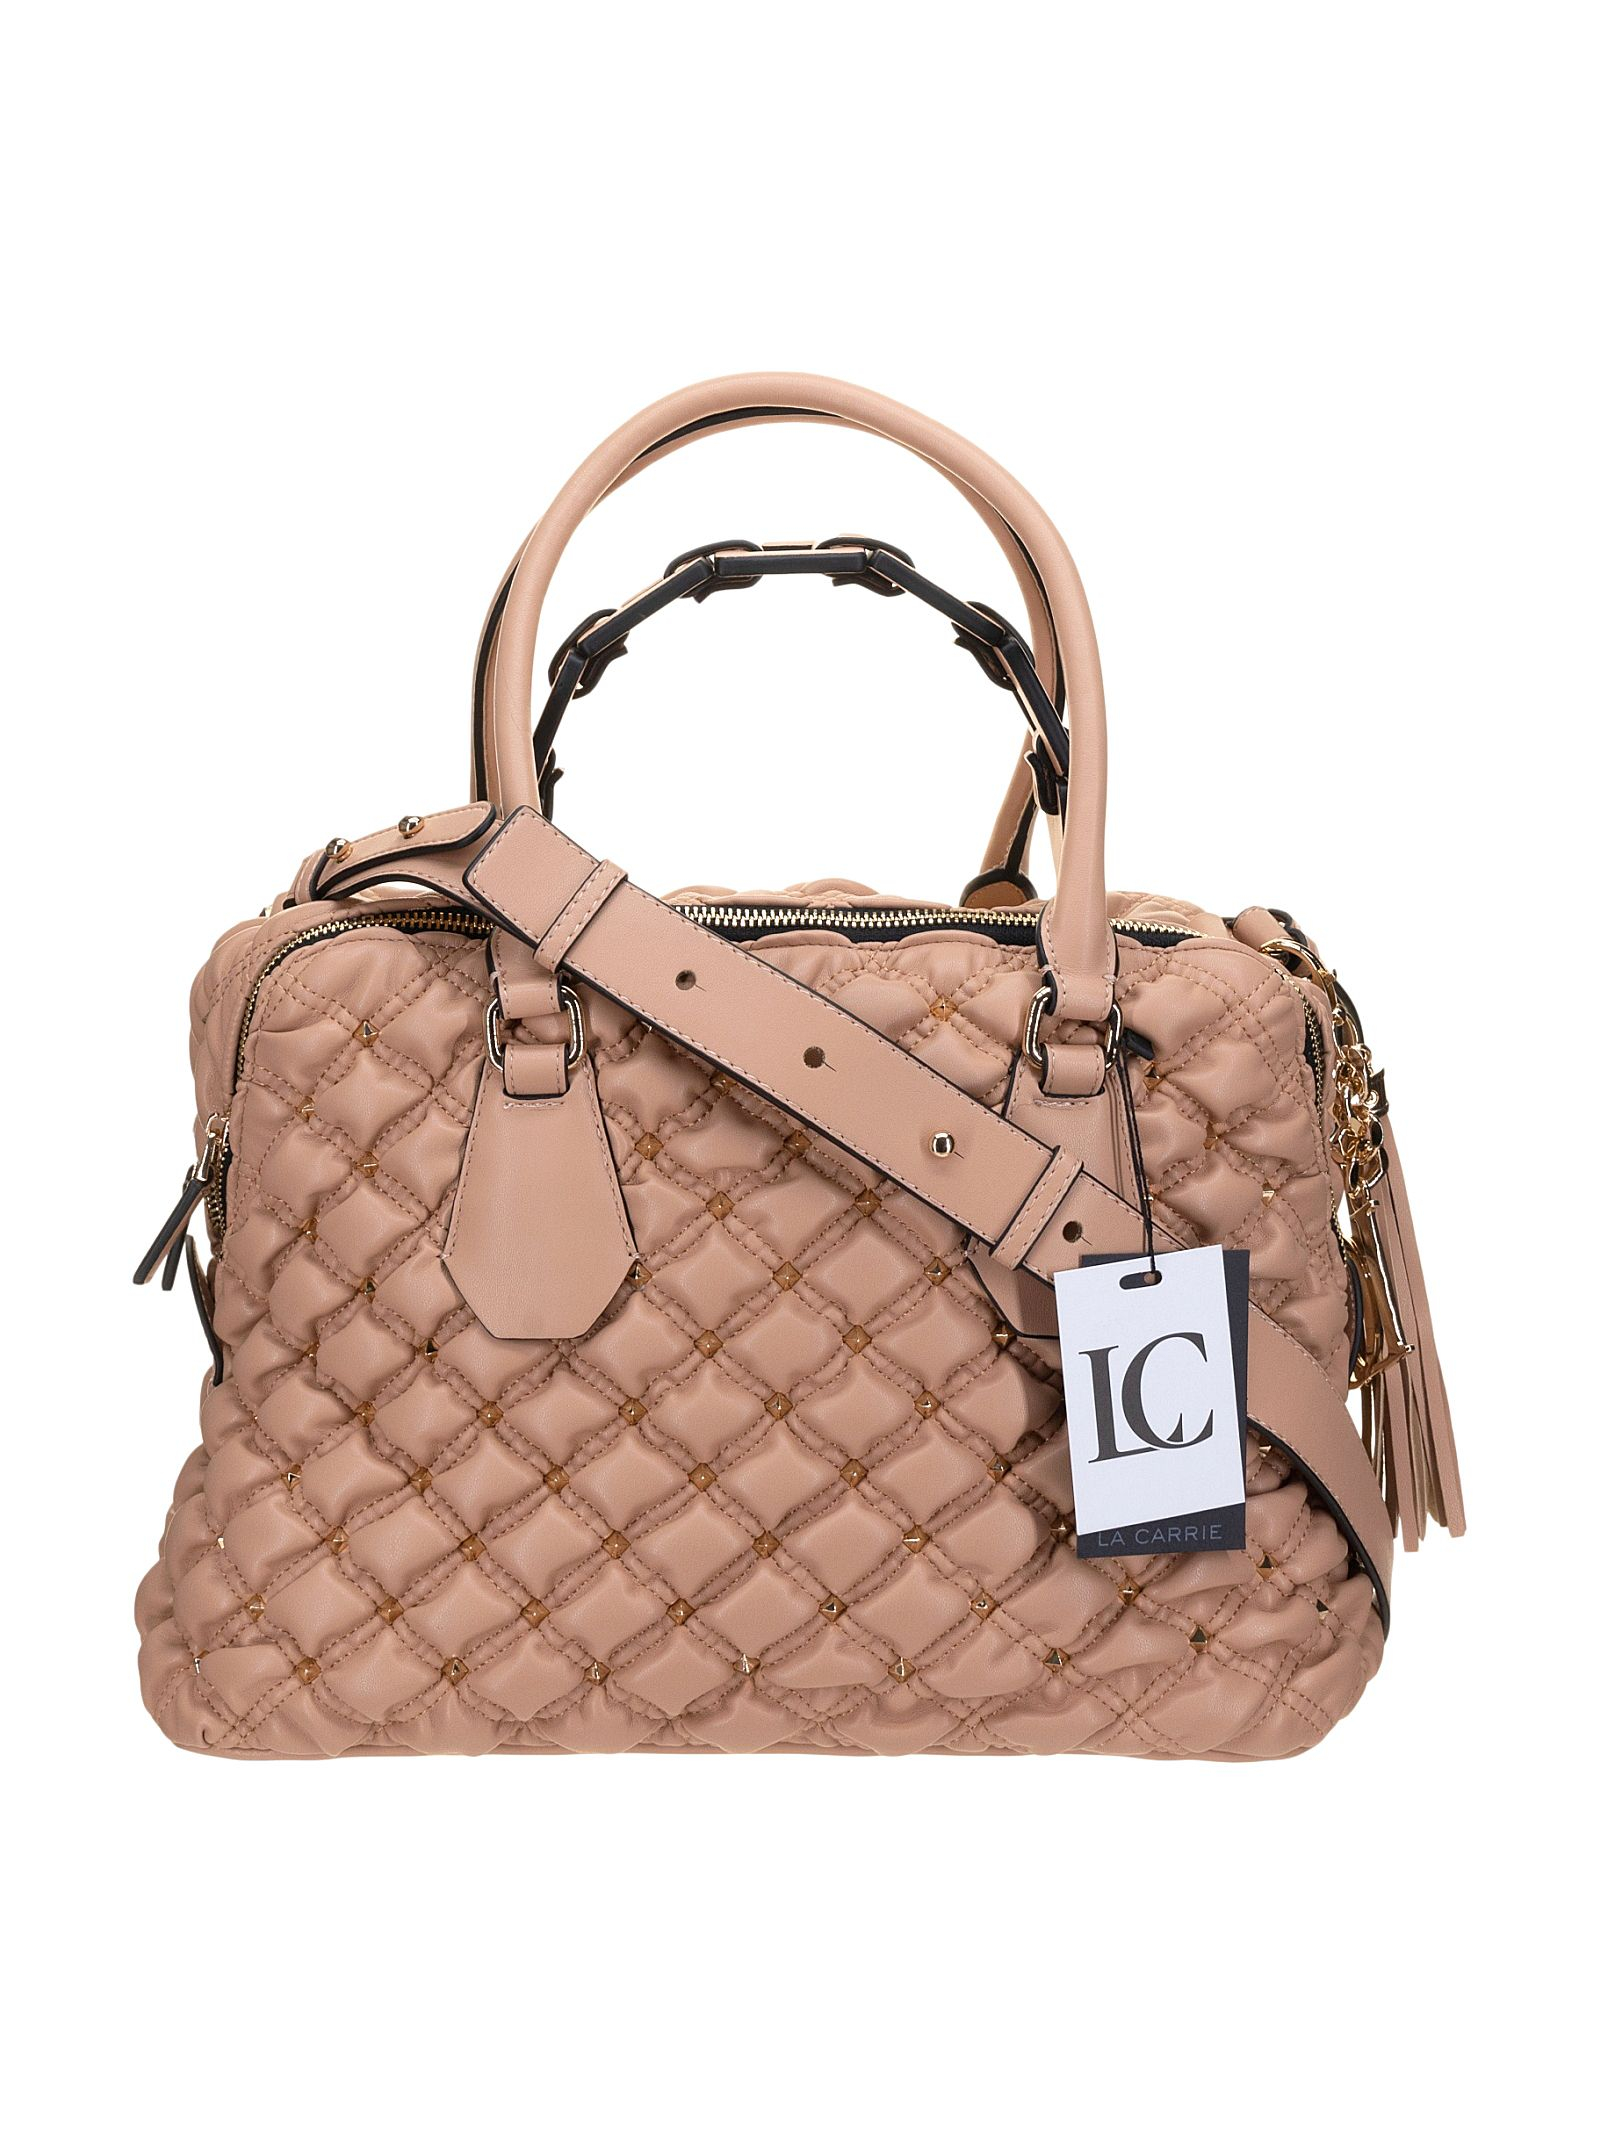 La Carrie Borsa a Mano Old Pink